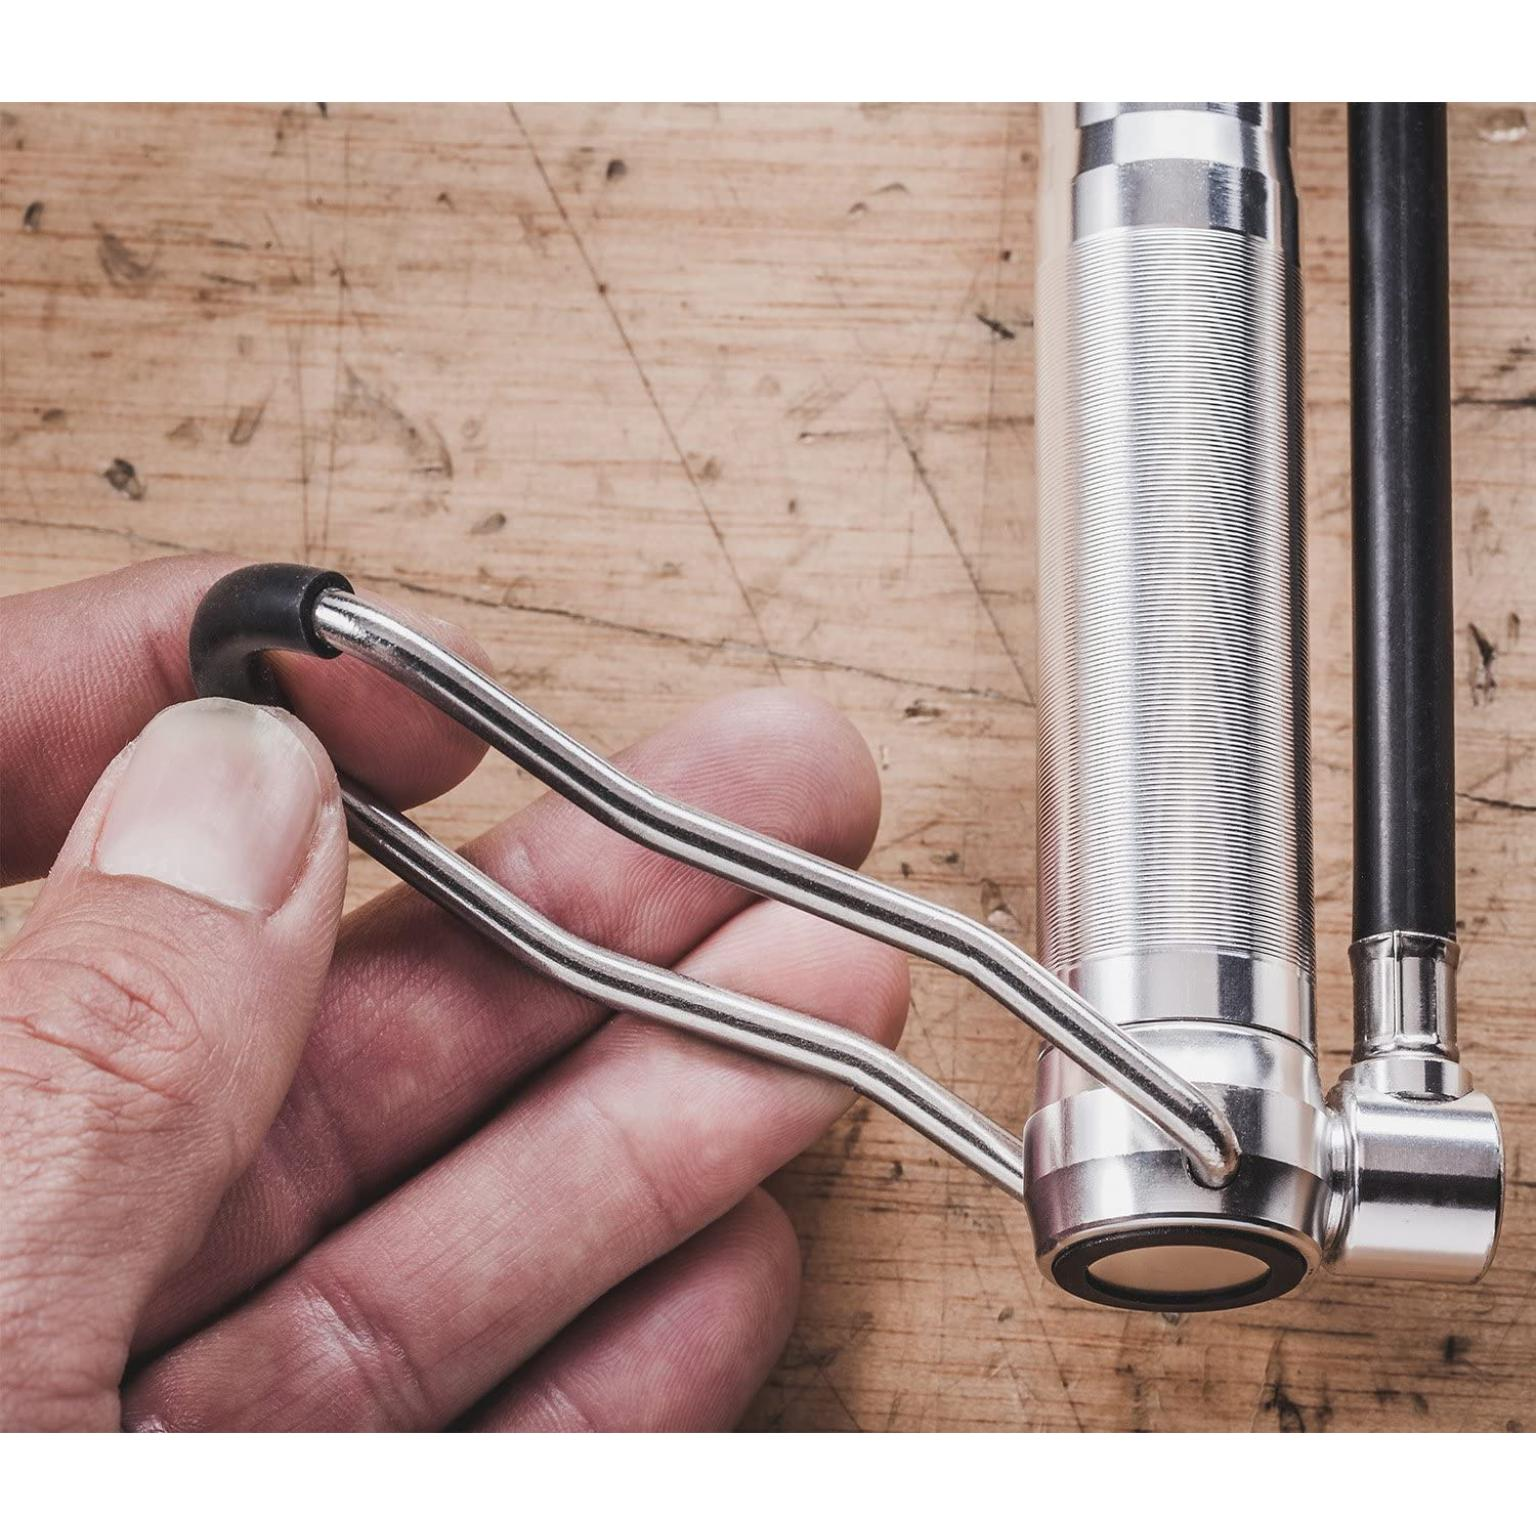 Mini Floor Bike Pump, Super Fast Tire Inflation, Secure Presta and Schrader Valve Connection. High Pressure Bicycle Pump with Stabilizing Foot Peg for Road, Mountain, Touring, Hybrid and Fat Tires